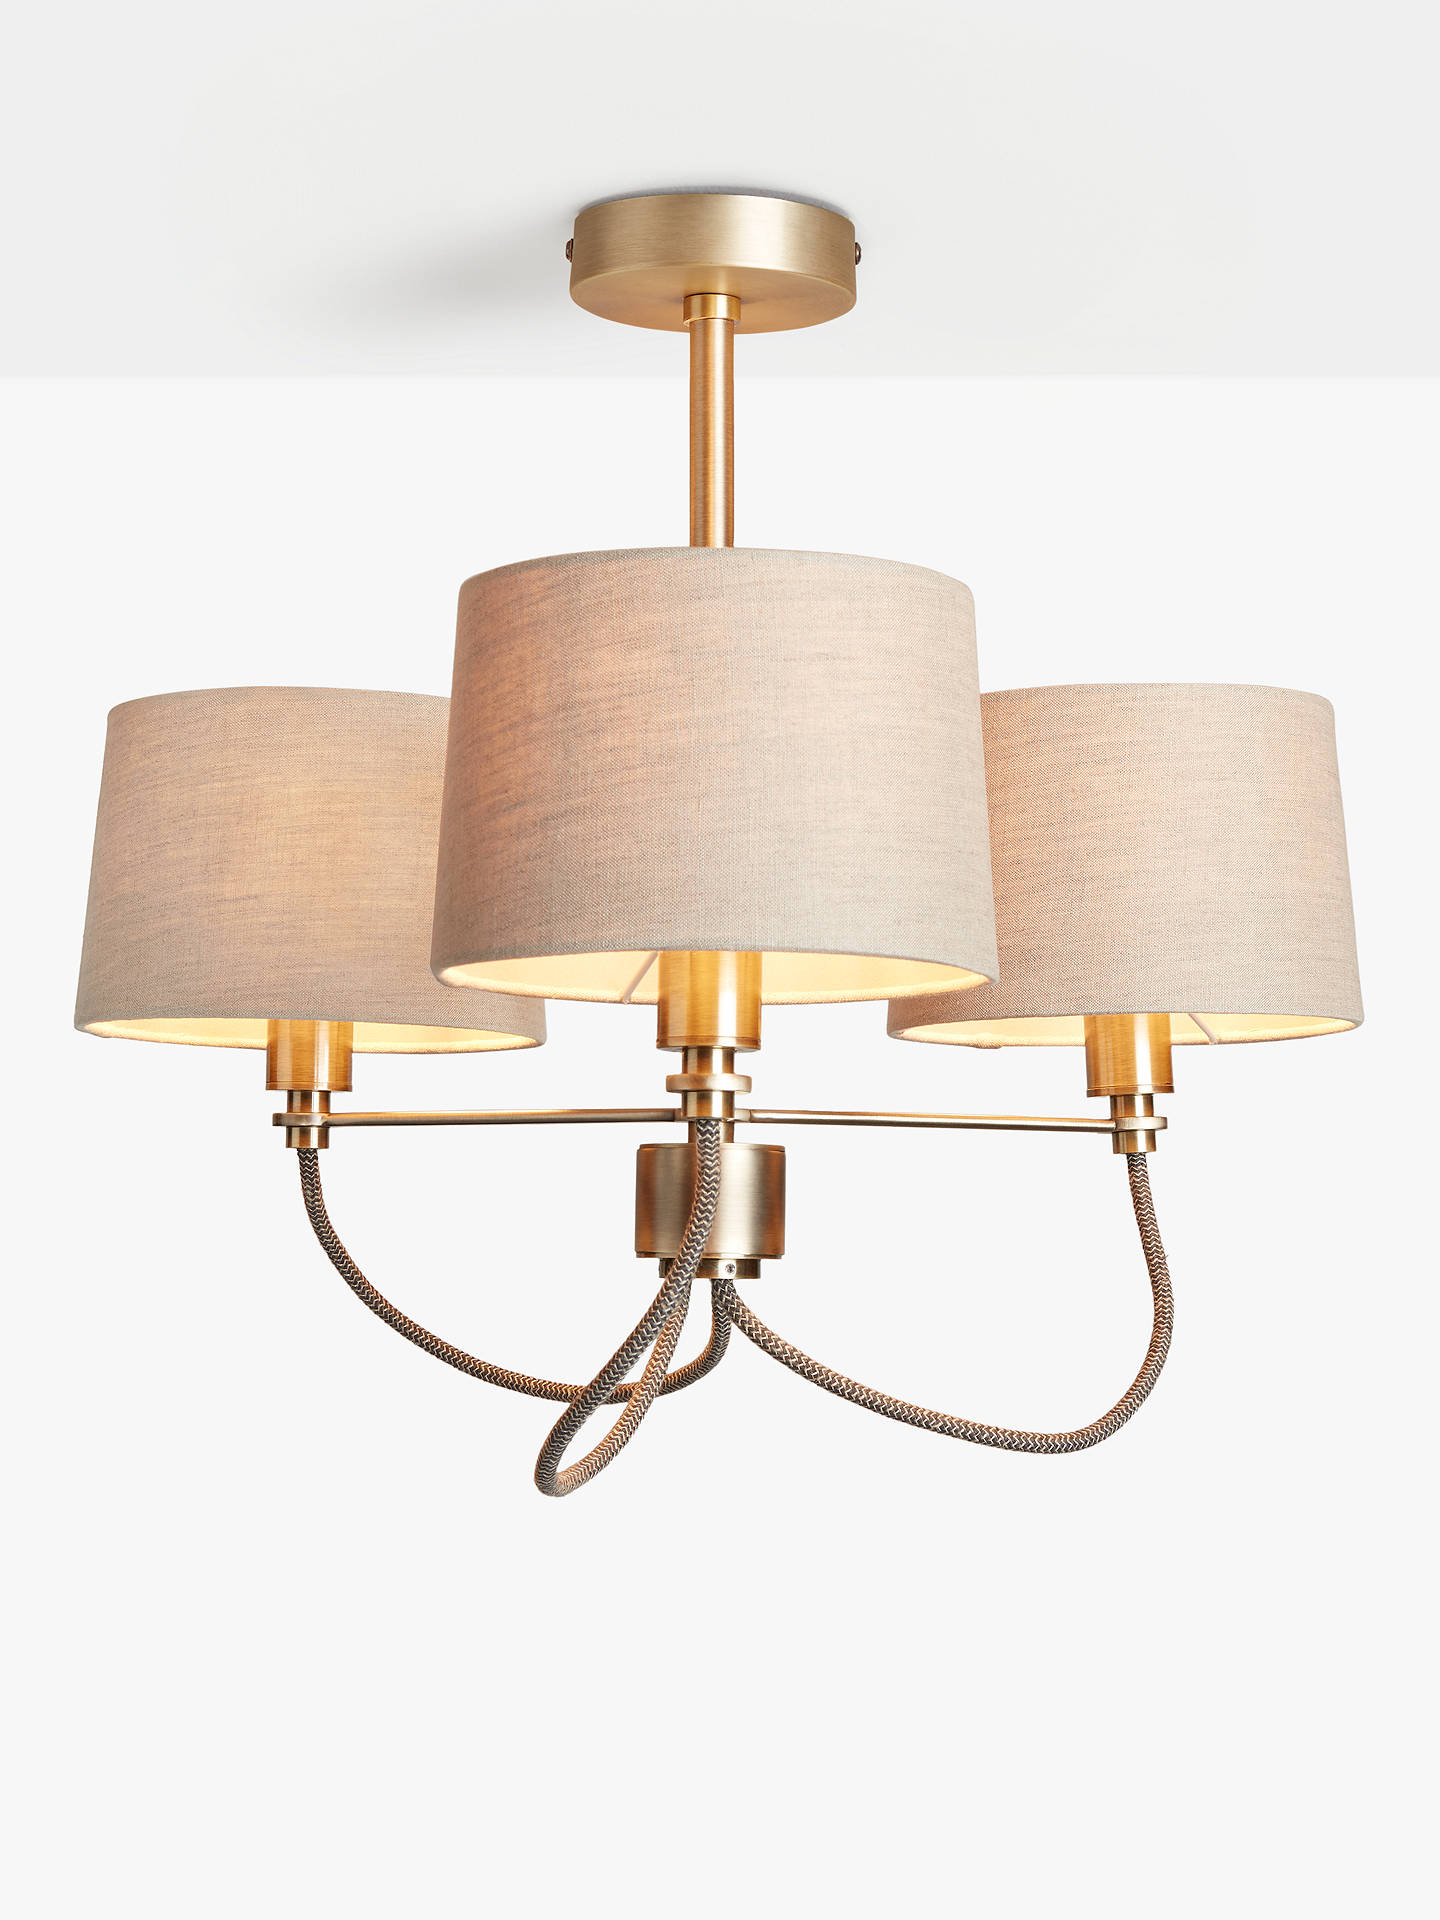 Buy John Lewis & Partners Rufus Semi-Flush Ceiling Light, Antique Brass Online at johnlewis.com